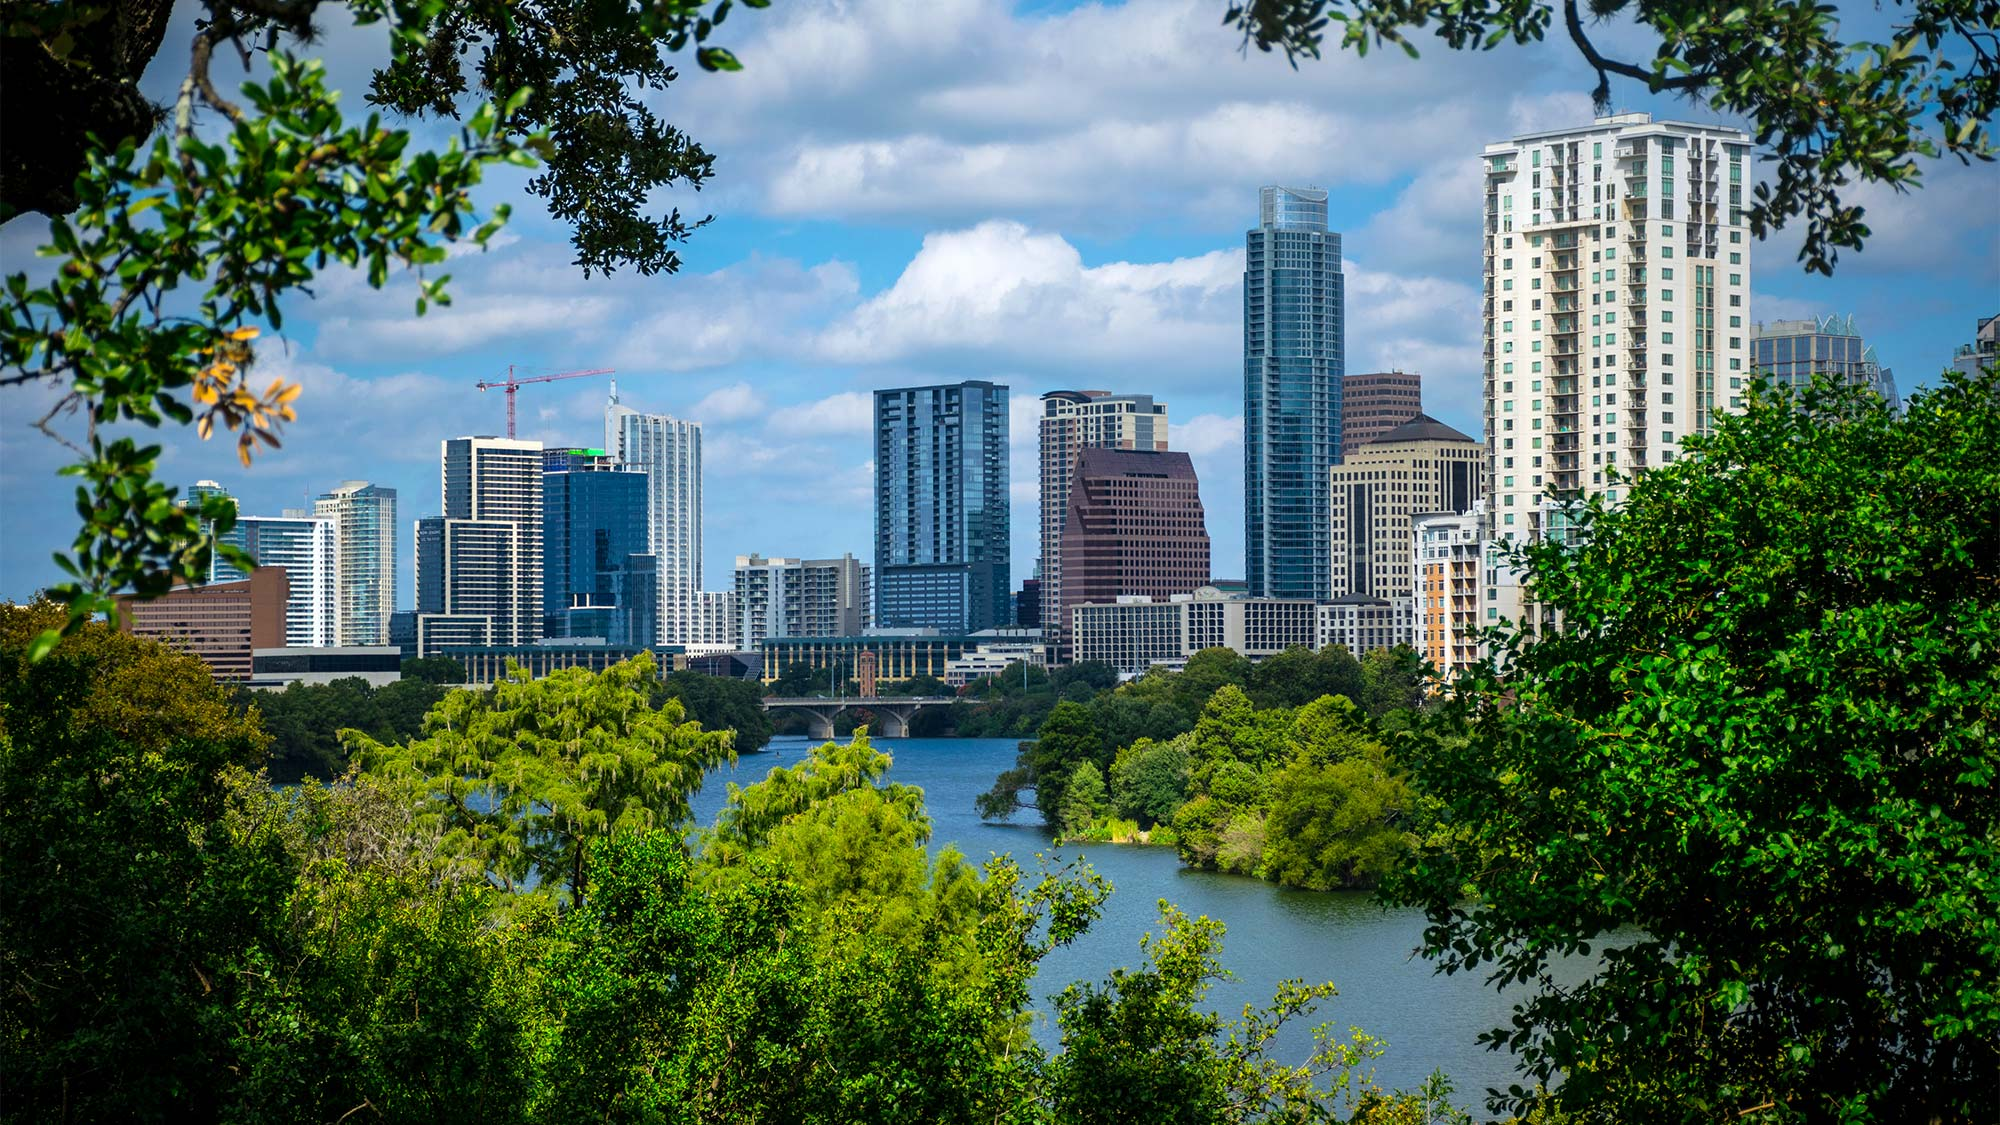 1cd0e austin suburb The 10 US Cities With the Fastest Growing Suburbs